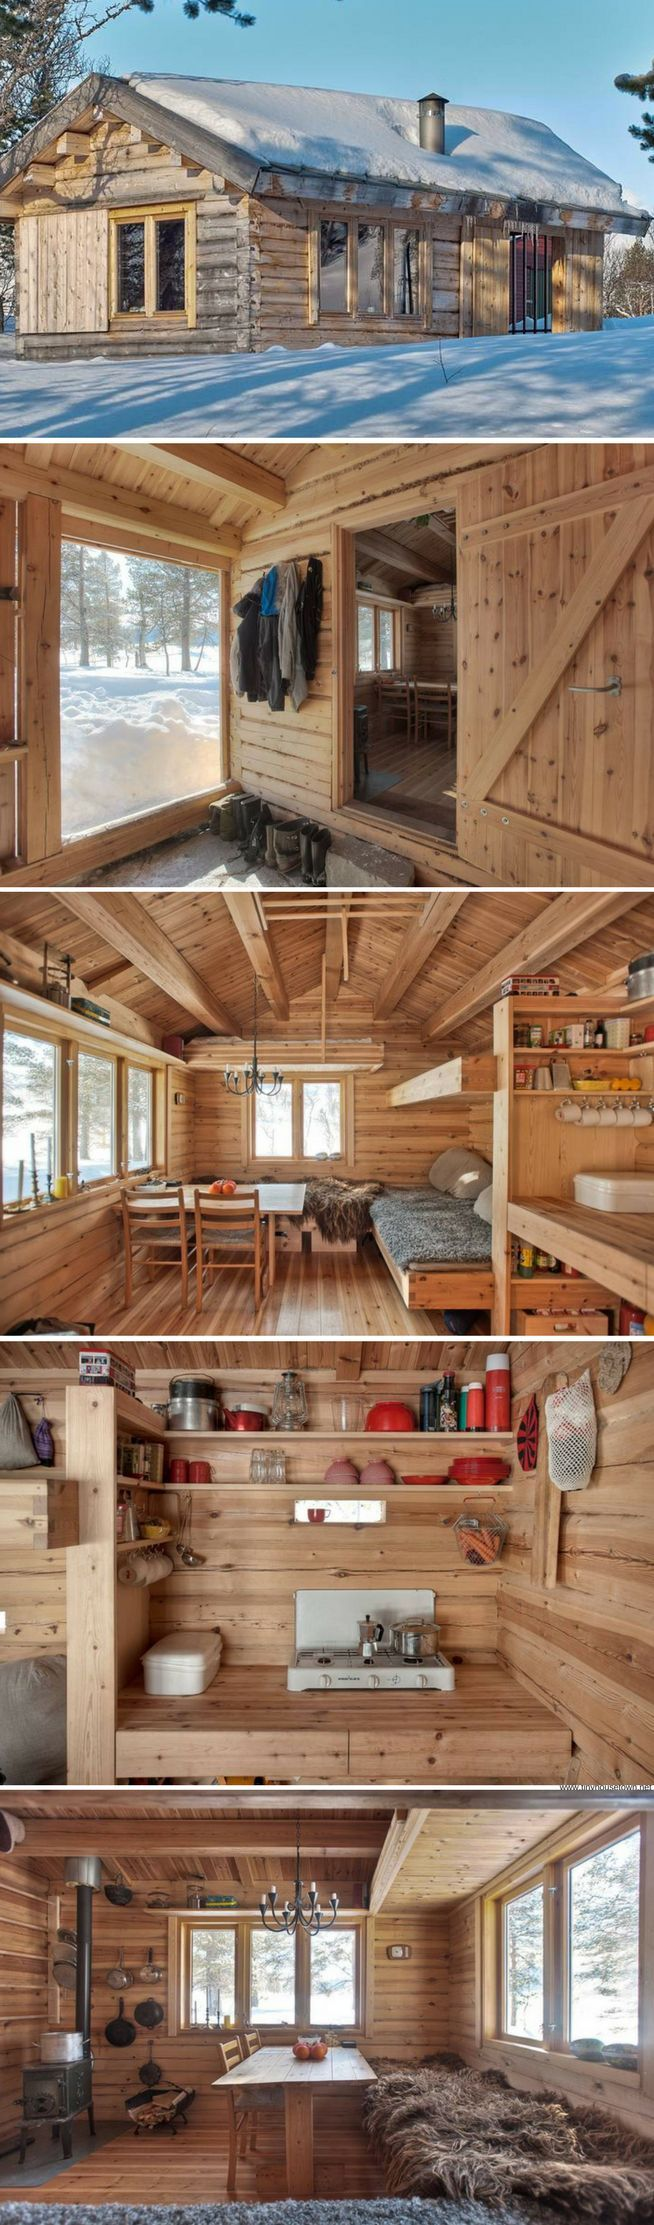 cool A 118 sq ft cabin in Norway... by http://www.top-100-homedecorpictures.us/home-improvement/a-118-sq-ft-cabin-in-norway/